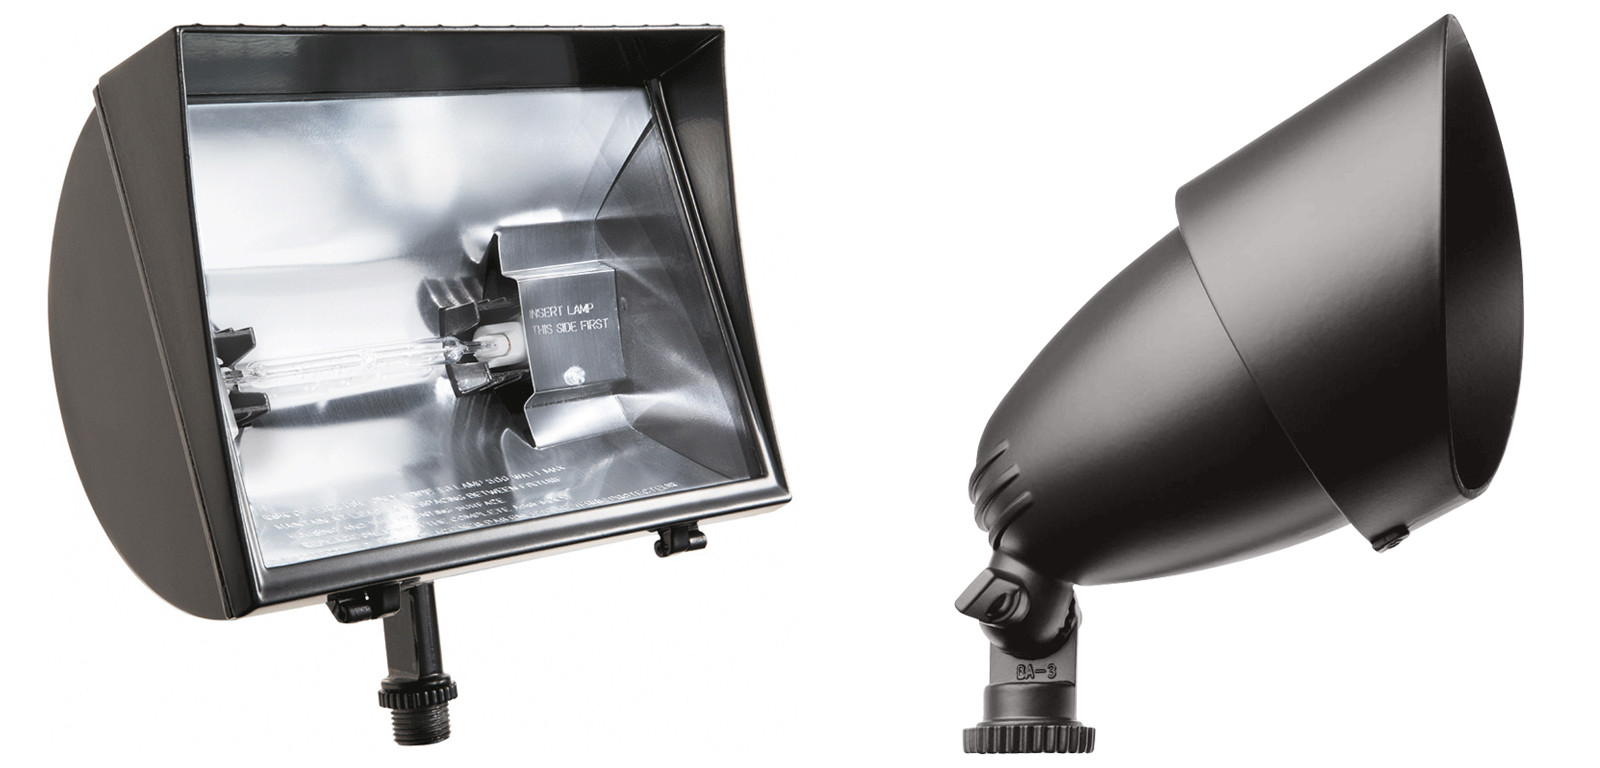 Best ideas about Outdoor Flood Light Fixtures . Save or Pin 10 reasons to install Halogen outdoor flood lights Now.